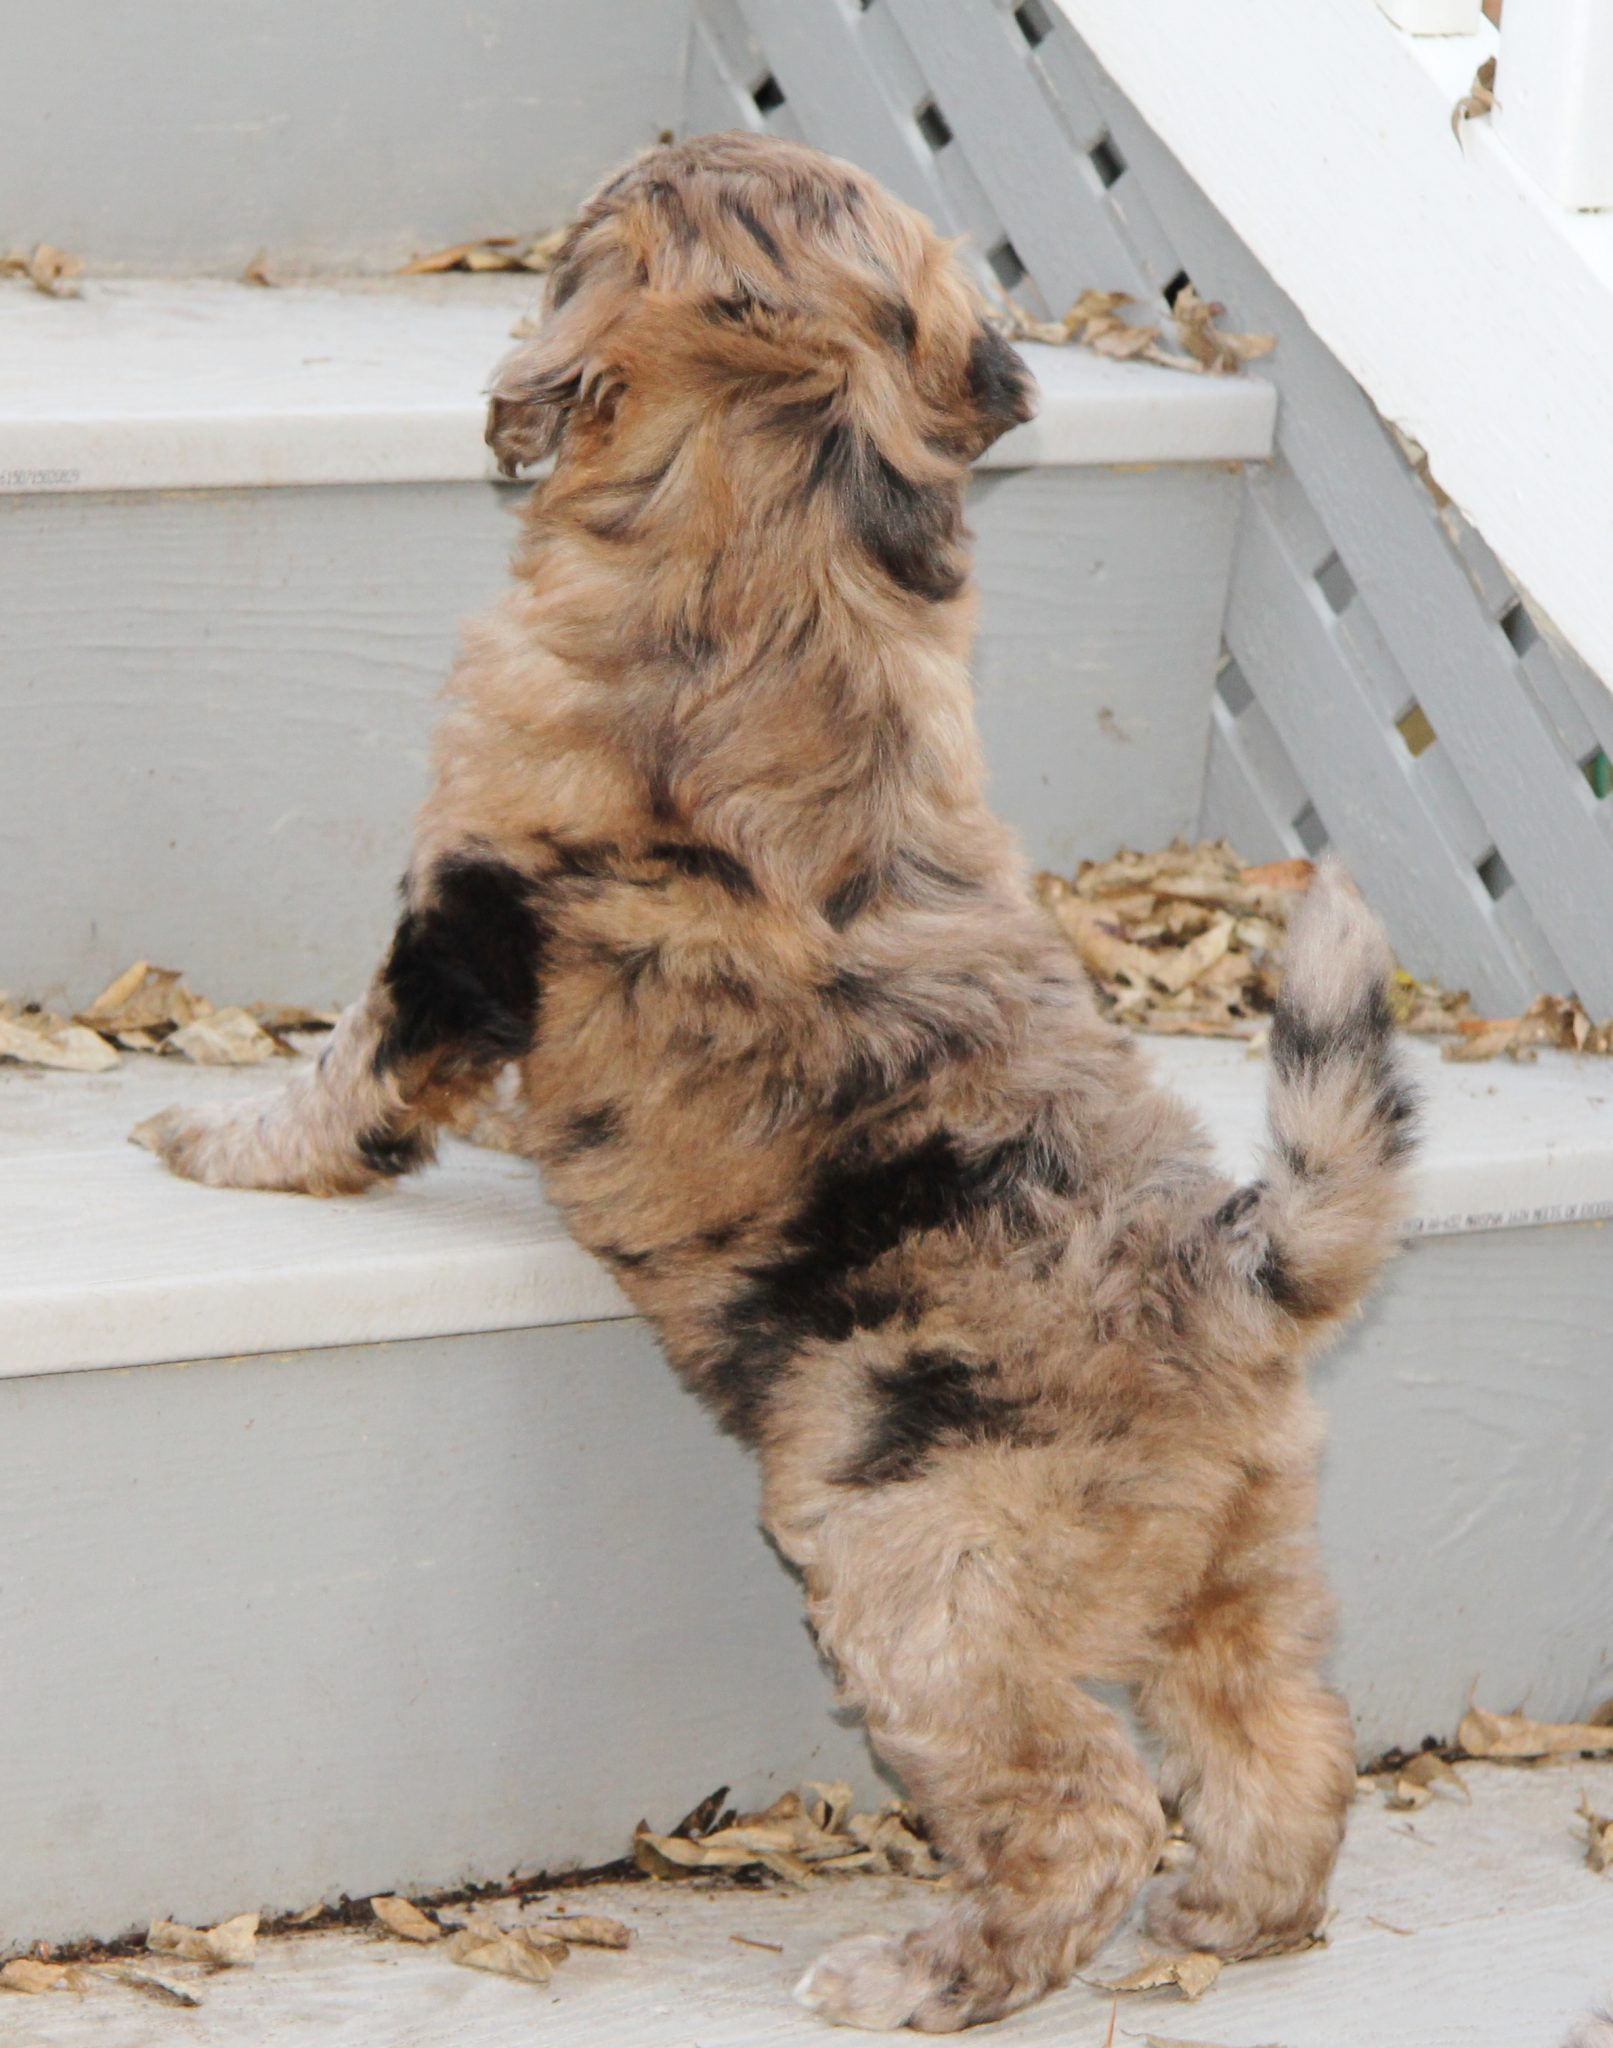 Traversing the stairs can be tough, but our puppies learn to face their fears!